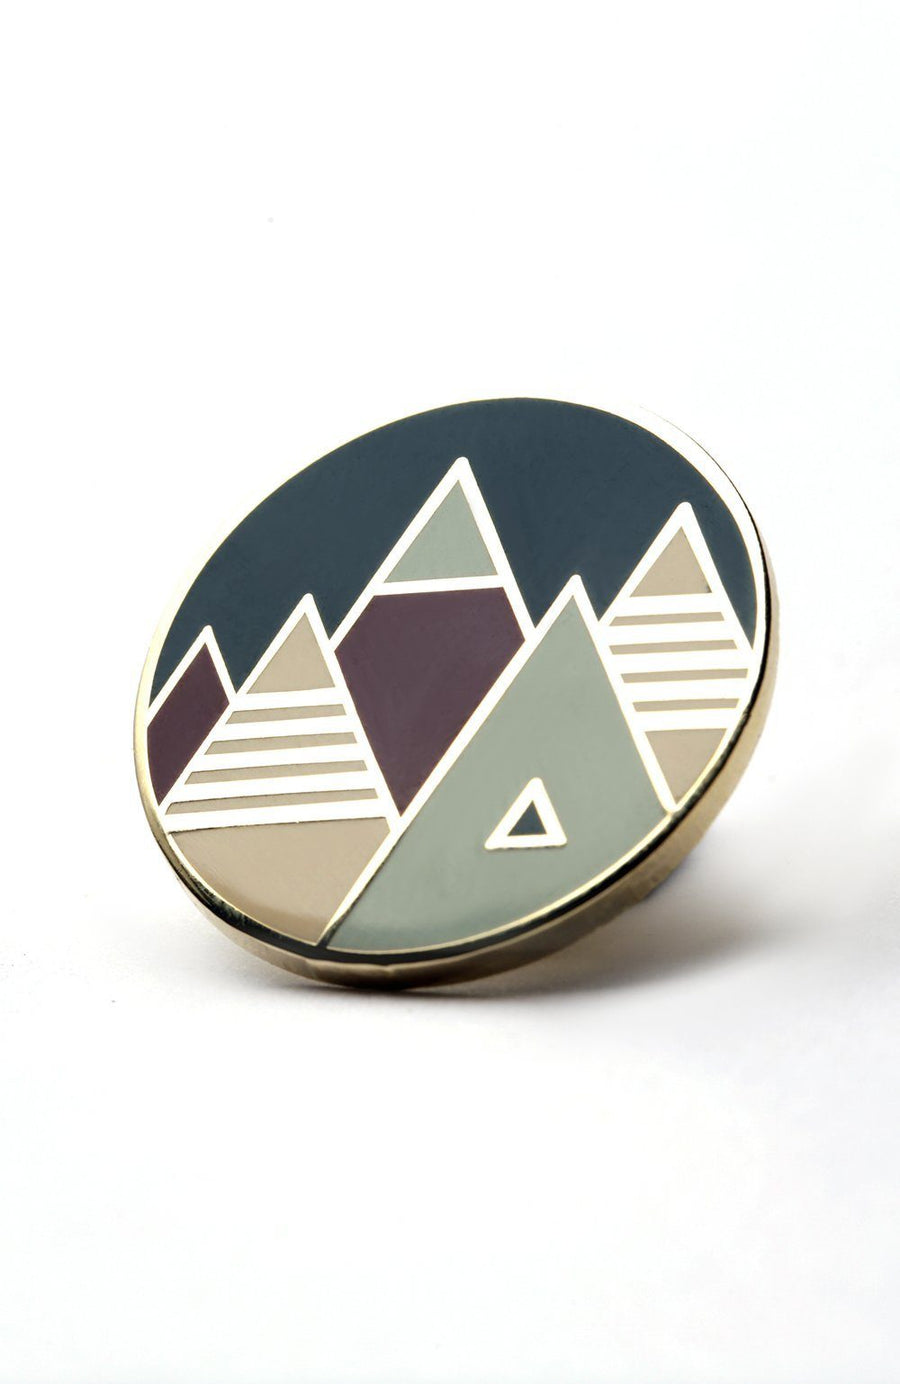 Purple Mountains Majesty Enamel Pin - Wondery, A Parks Apparel Brand